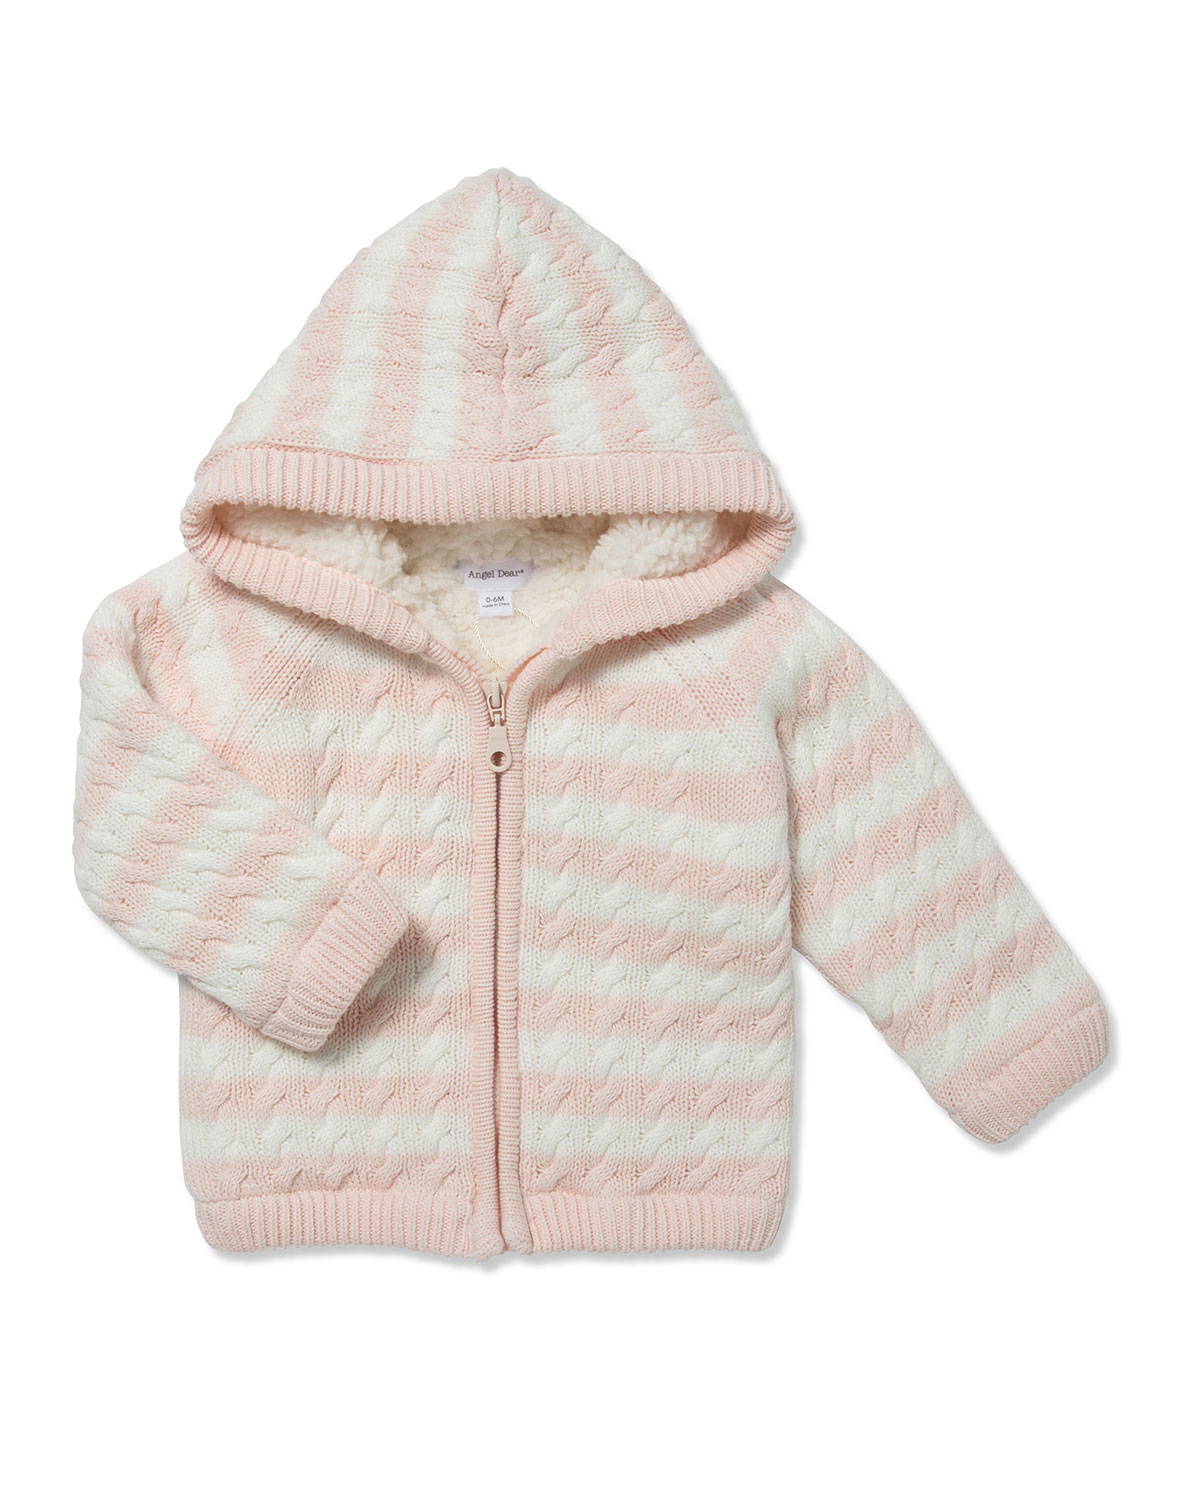 Angel Dear Striped Knit Sherpa Lined Hooded Jacket, Size 0-18 Months